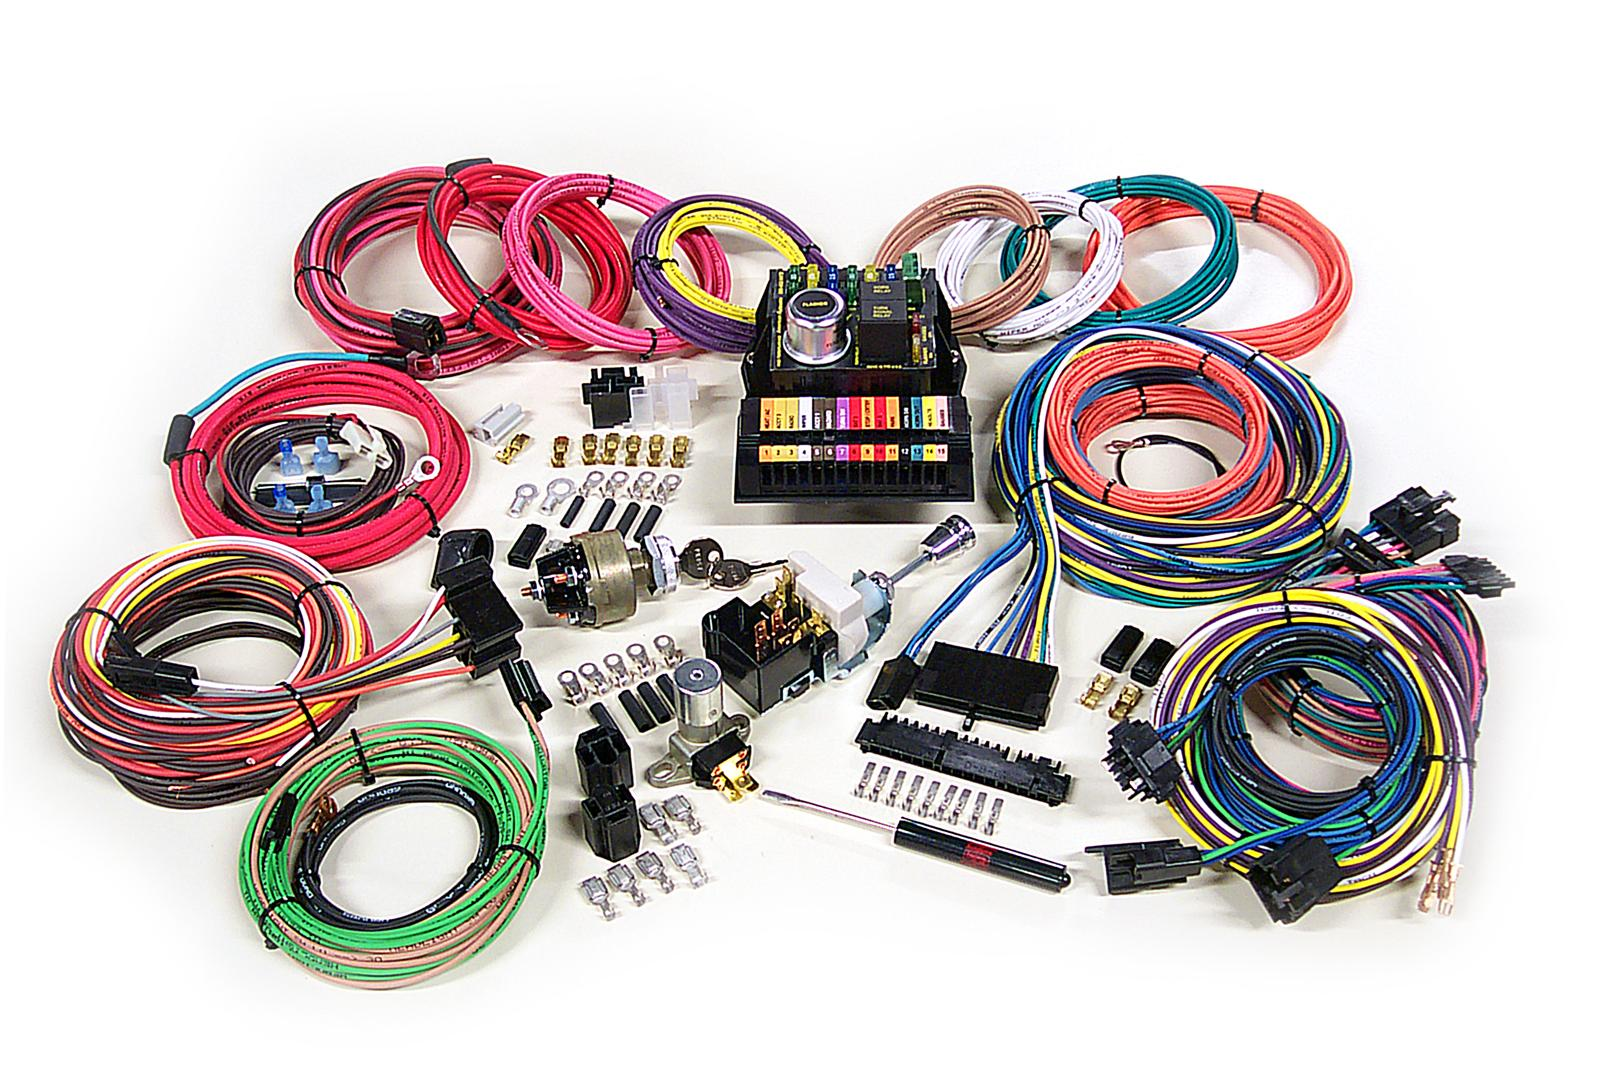 hight resolution of easy wiring harness kit car wiring diagram mega easy wiring harness kit car